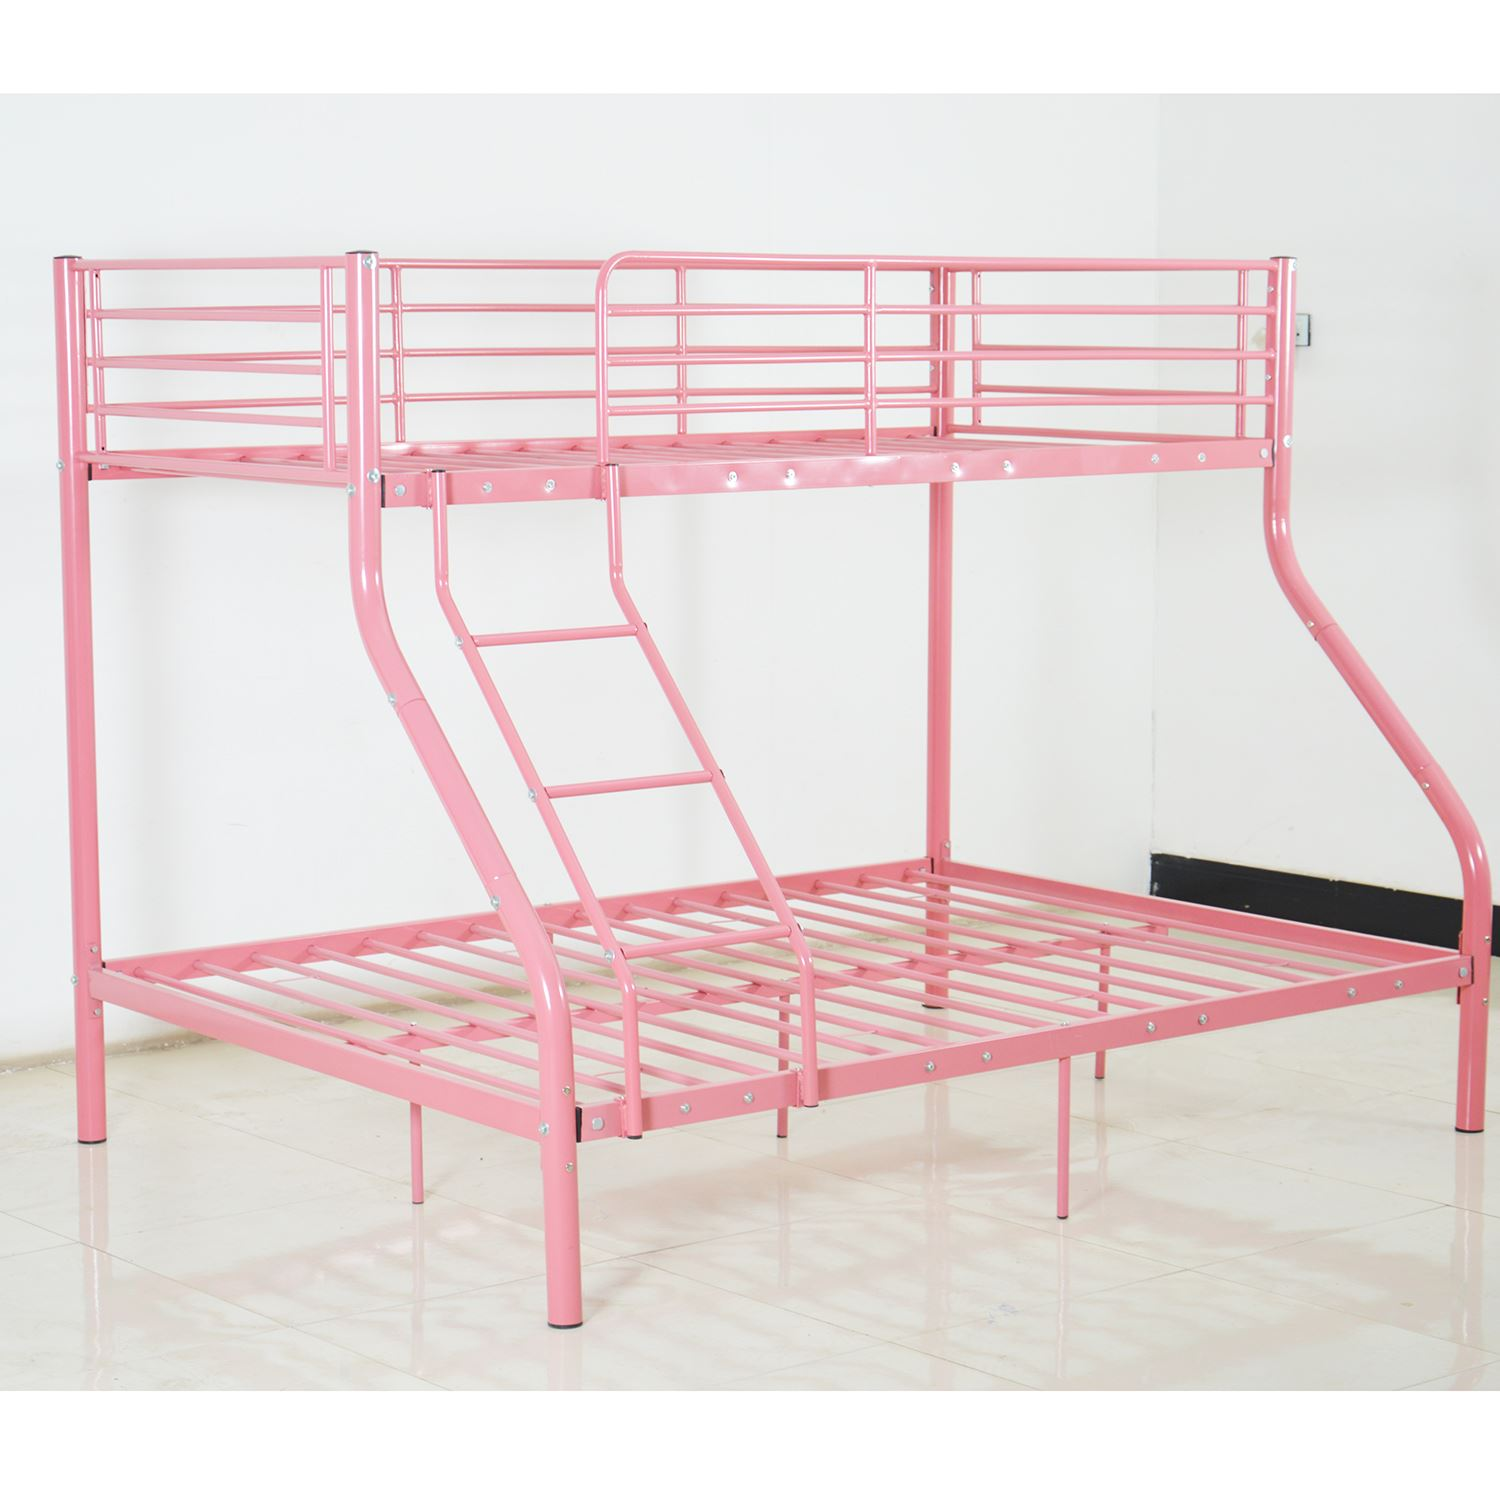 triple bunk bed children single double metal frame sleeper for kids no mattress ebay. Black Bedroom Furniture Sets. Home Design Ideas